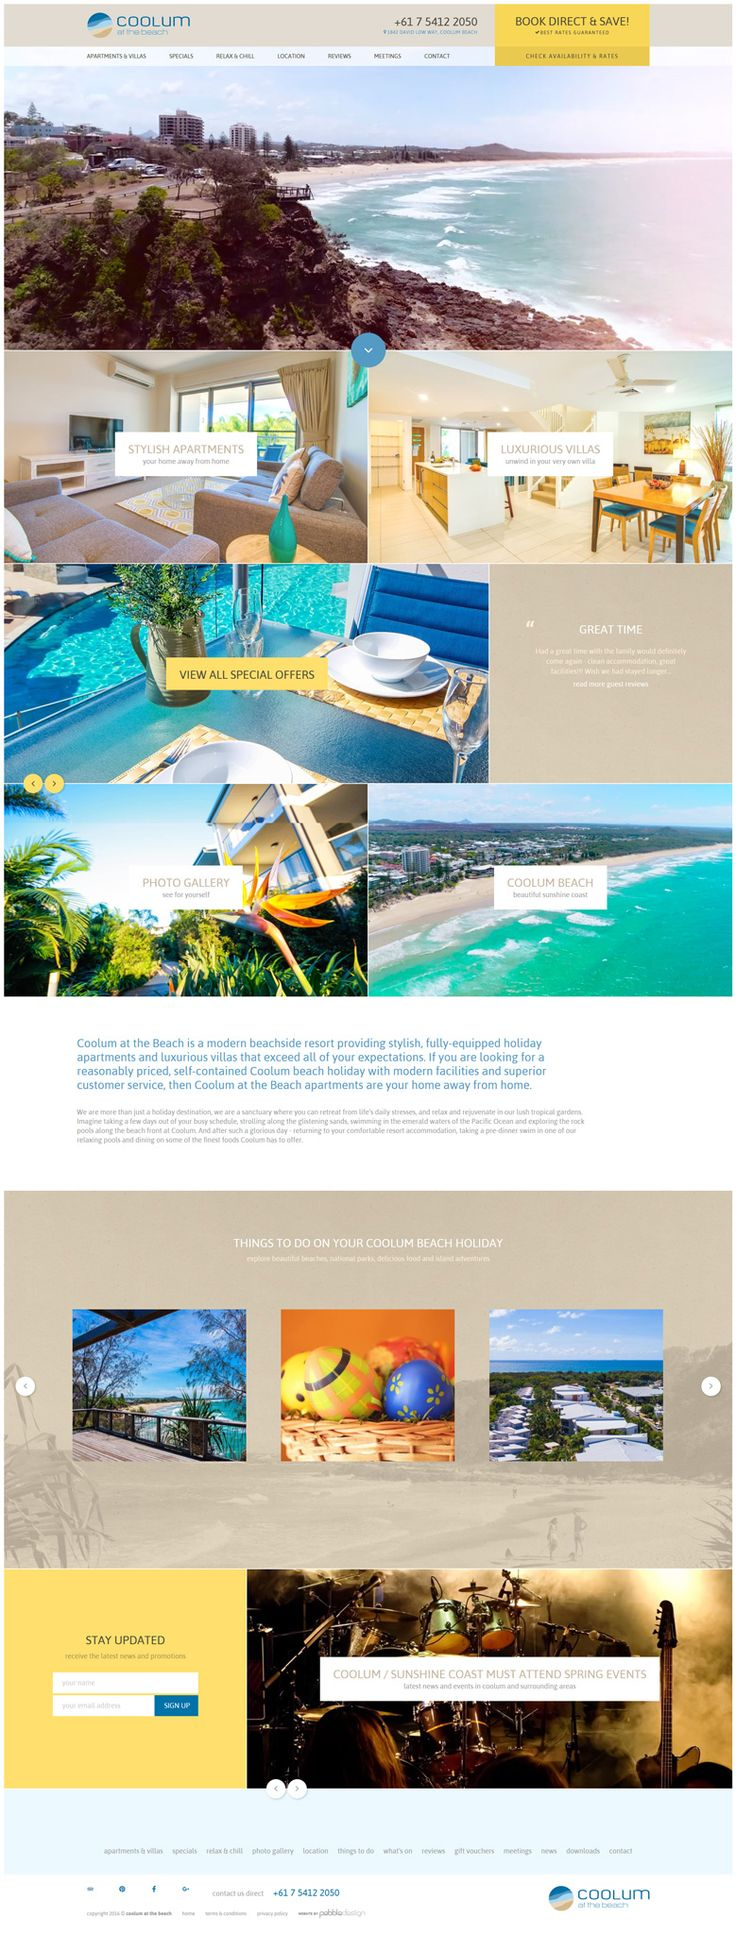 "Have a look at the new homepage we have made for Coolum at the Beach featuring our photography and video!  See more - http://pebbledesign.com/our-work Site - http://www.coolumatthebeach.com.au/  ""Coolum at the Beach is a modern beachside resort providing stylish, fully-equipped holiday apartments and luxurious villas that exceed all of your expectations."""